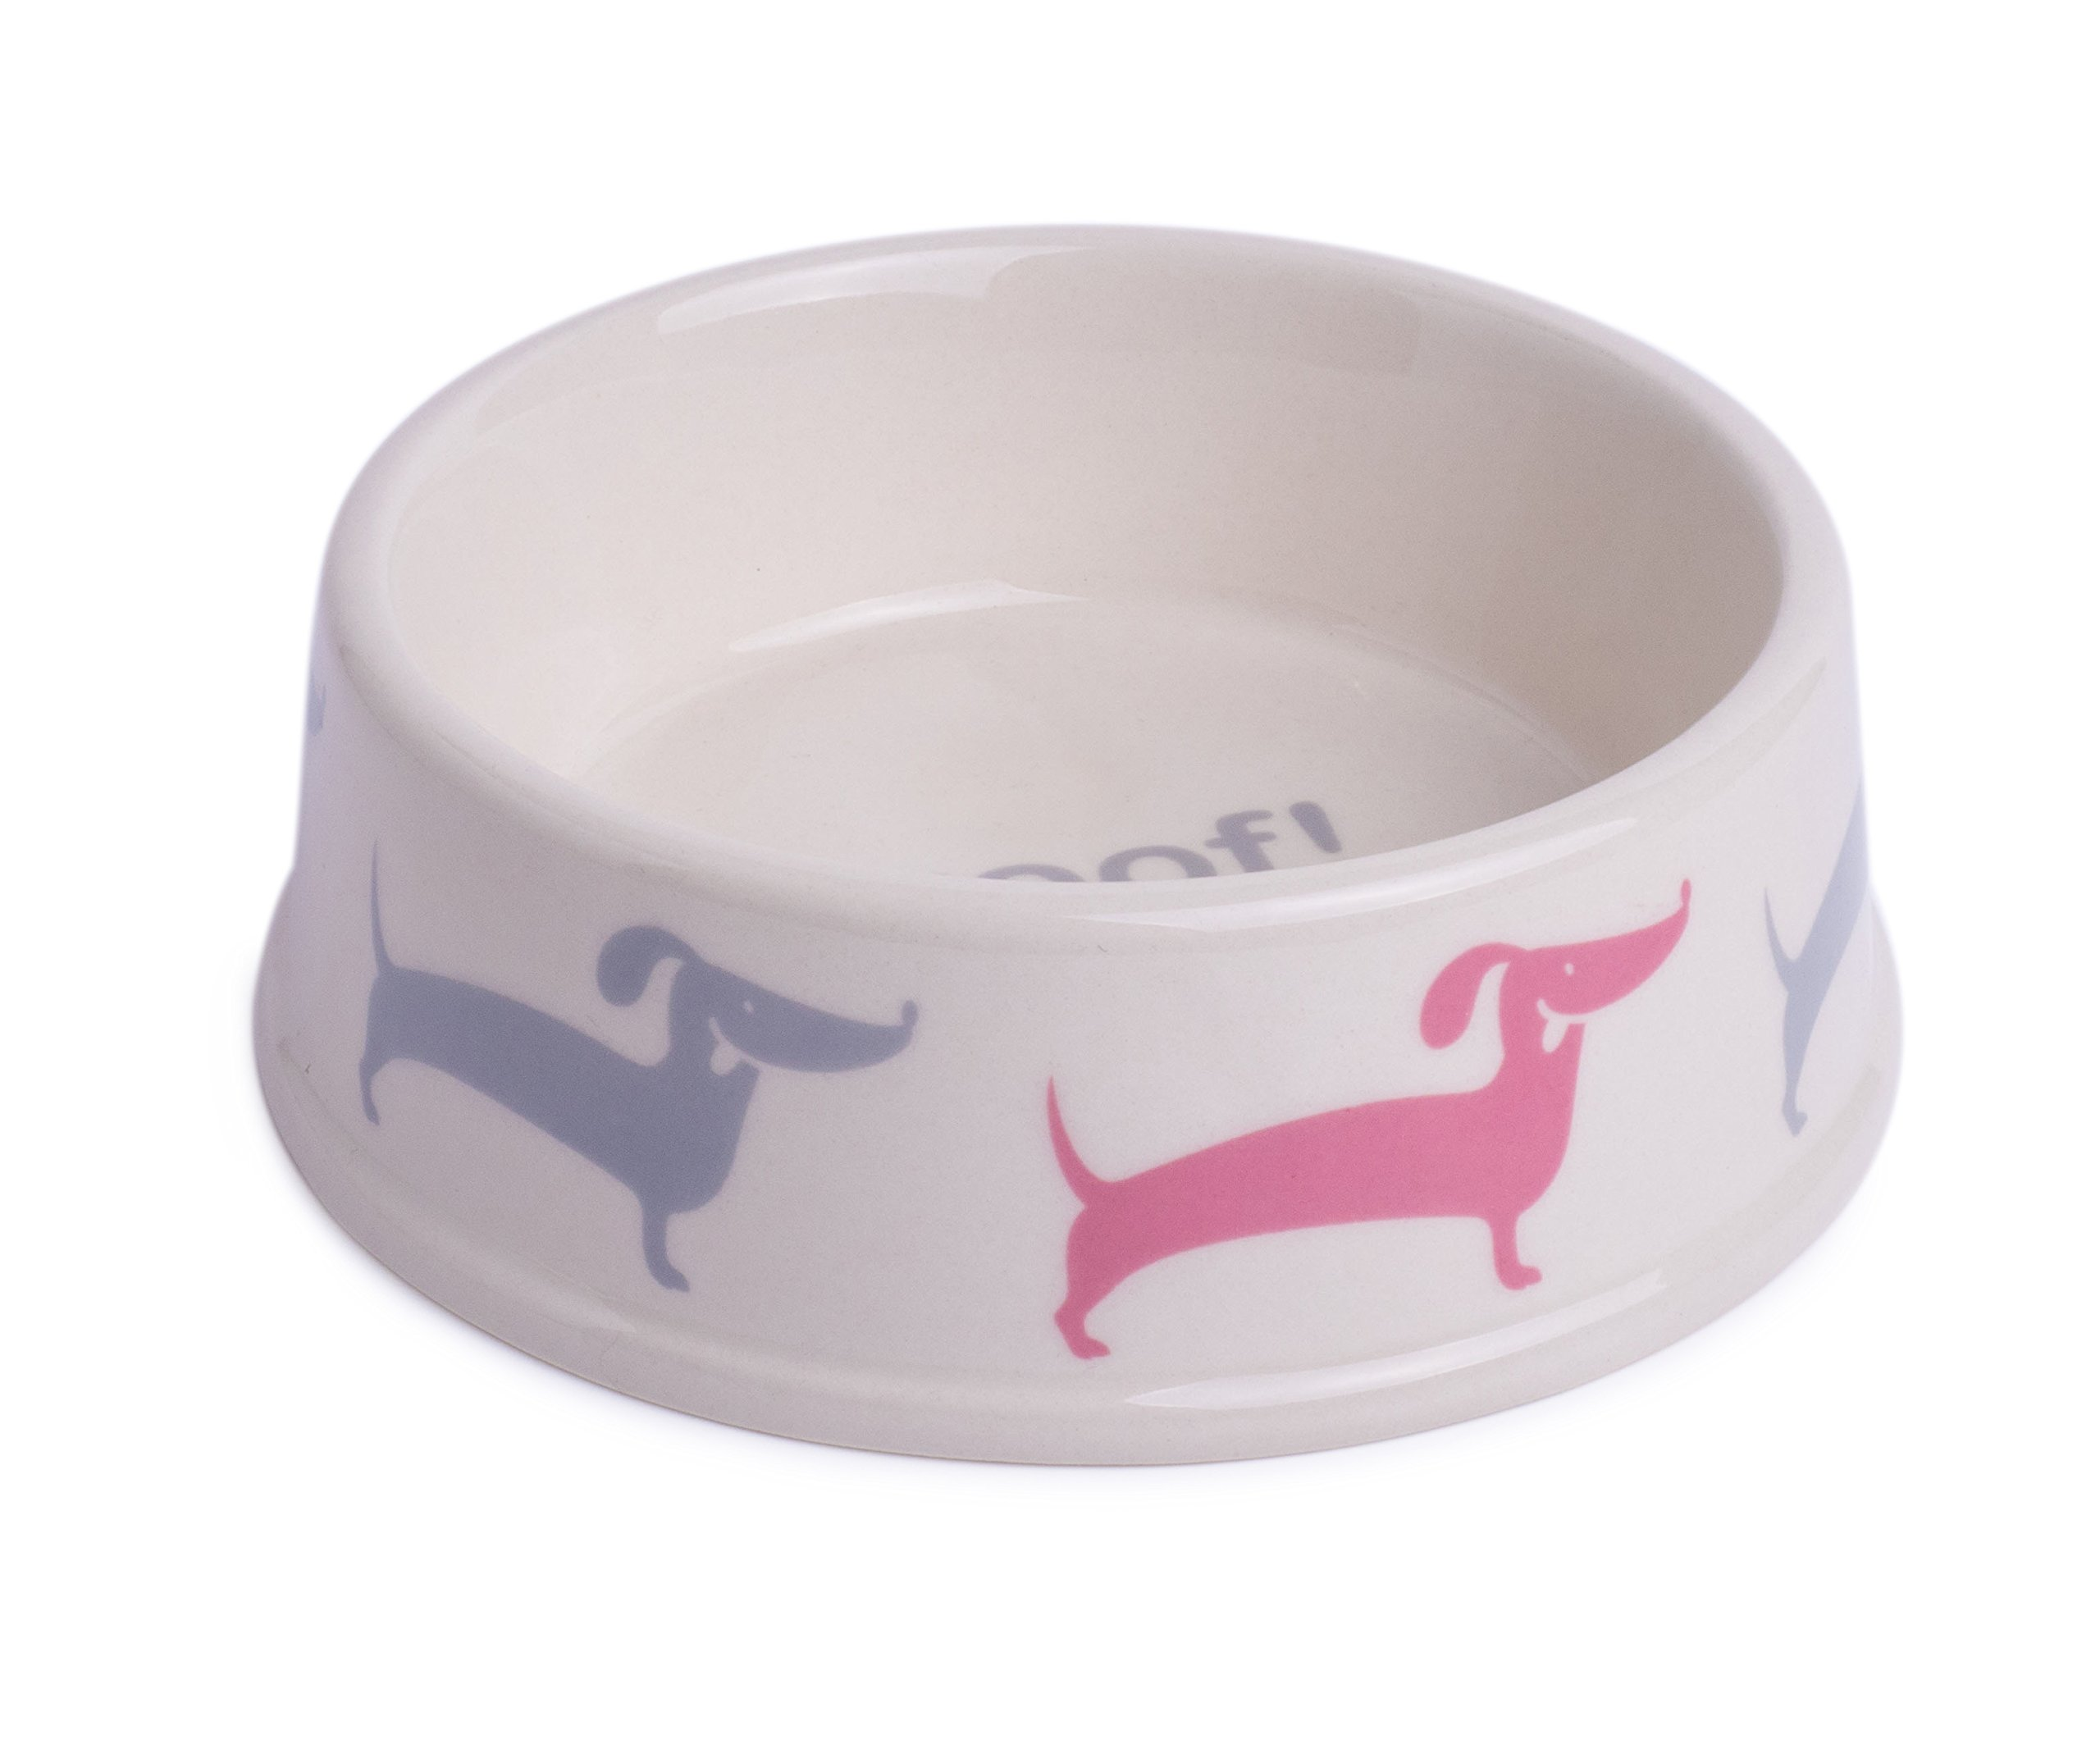 Petface Deli Collection Ceramic Pet Bowl | For Food & Water | Pet Bowl for Dogs & Cats | Dishwasher Safe | Cream | Small